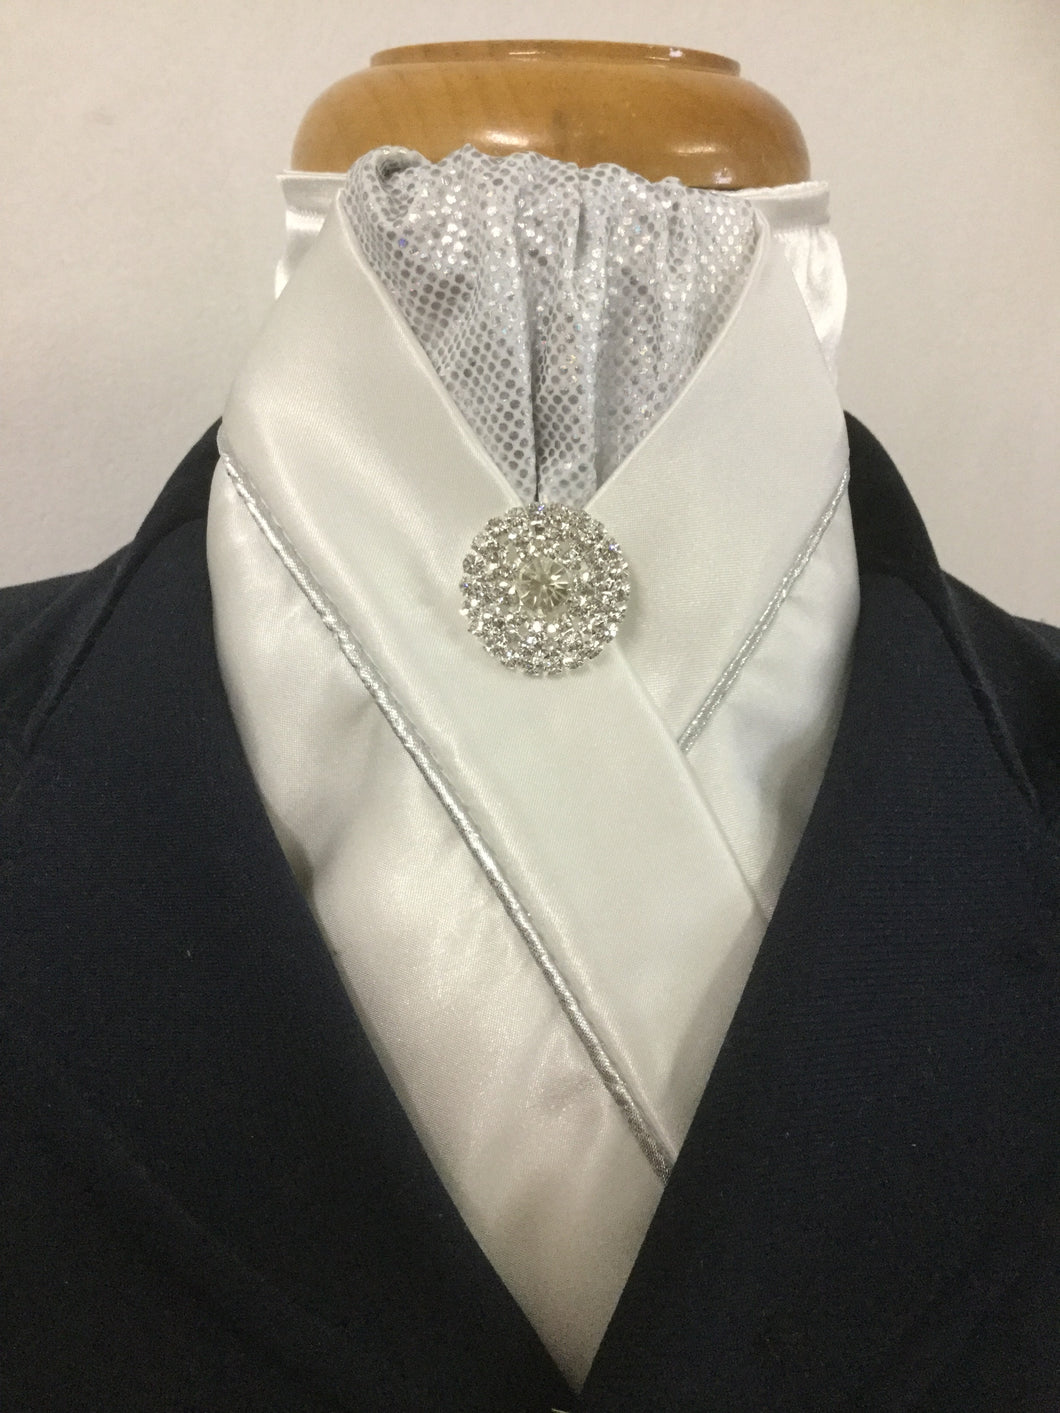 HHD 'Ellie' Ivory or White Custom Stock Tie in Silver with Rhinestone Pin